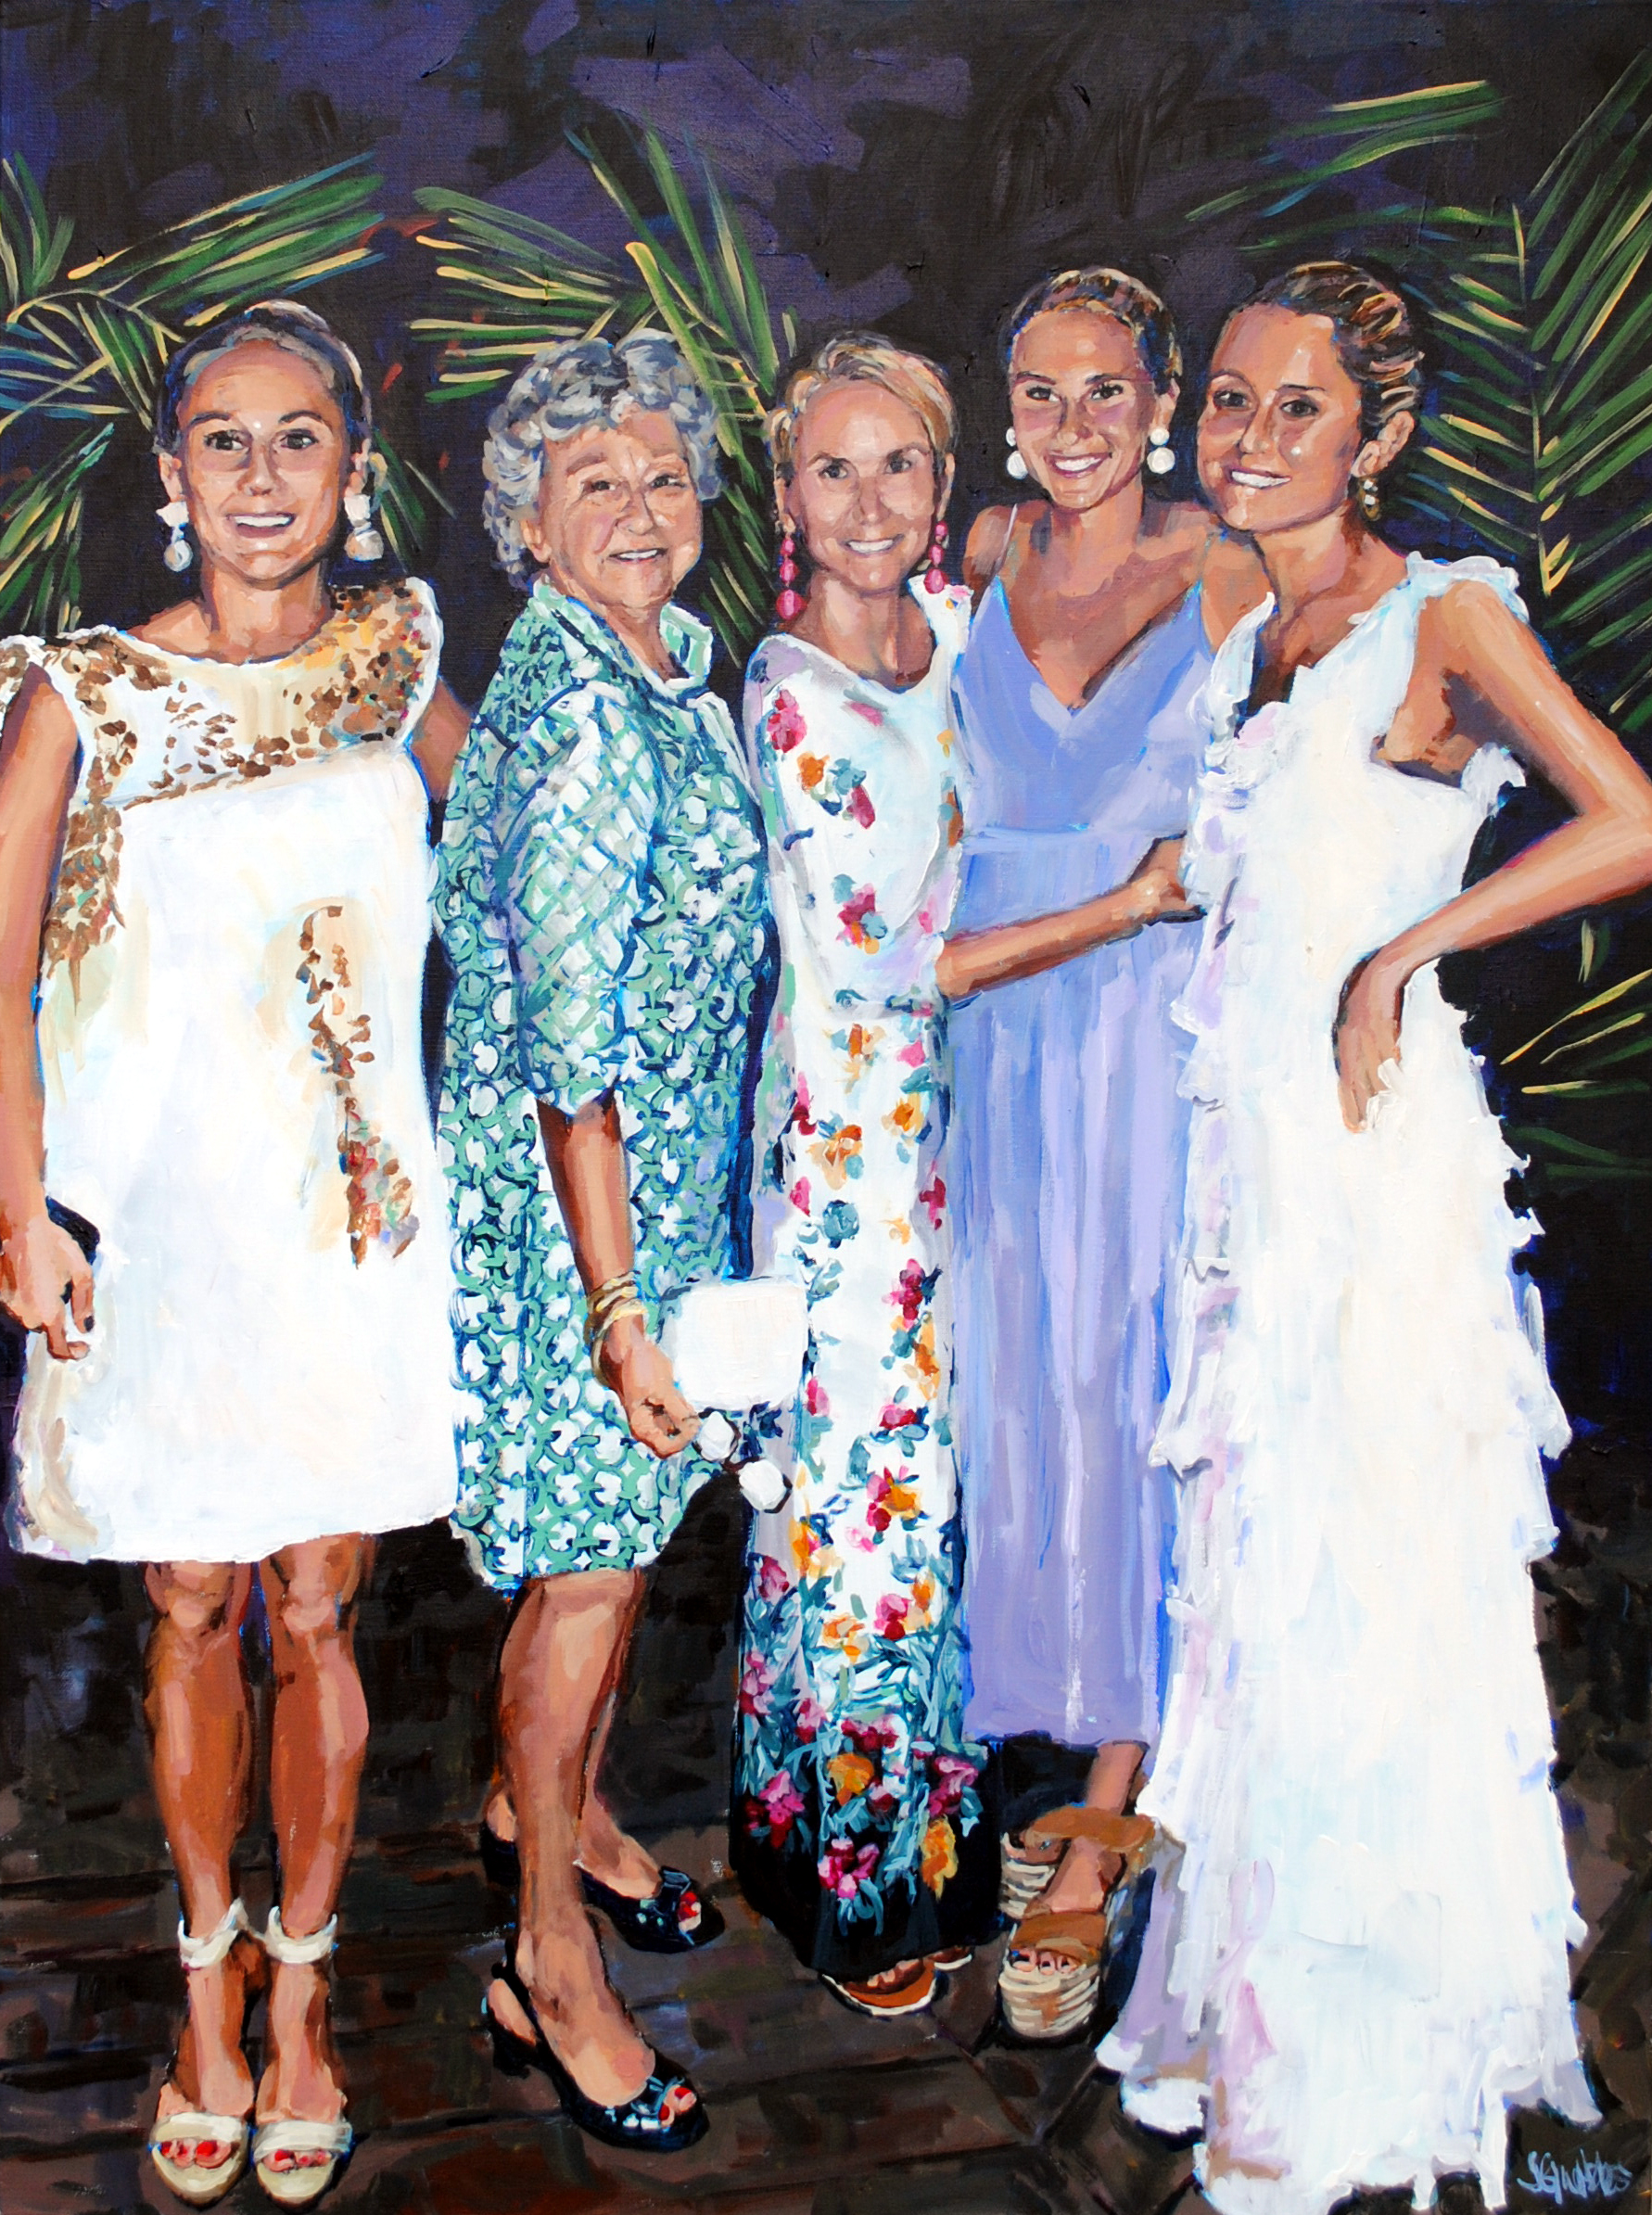 The Girls 30x40